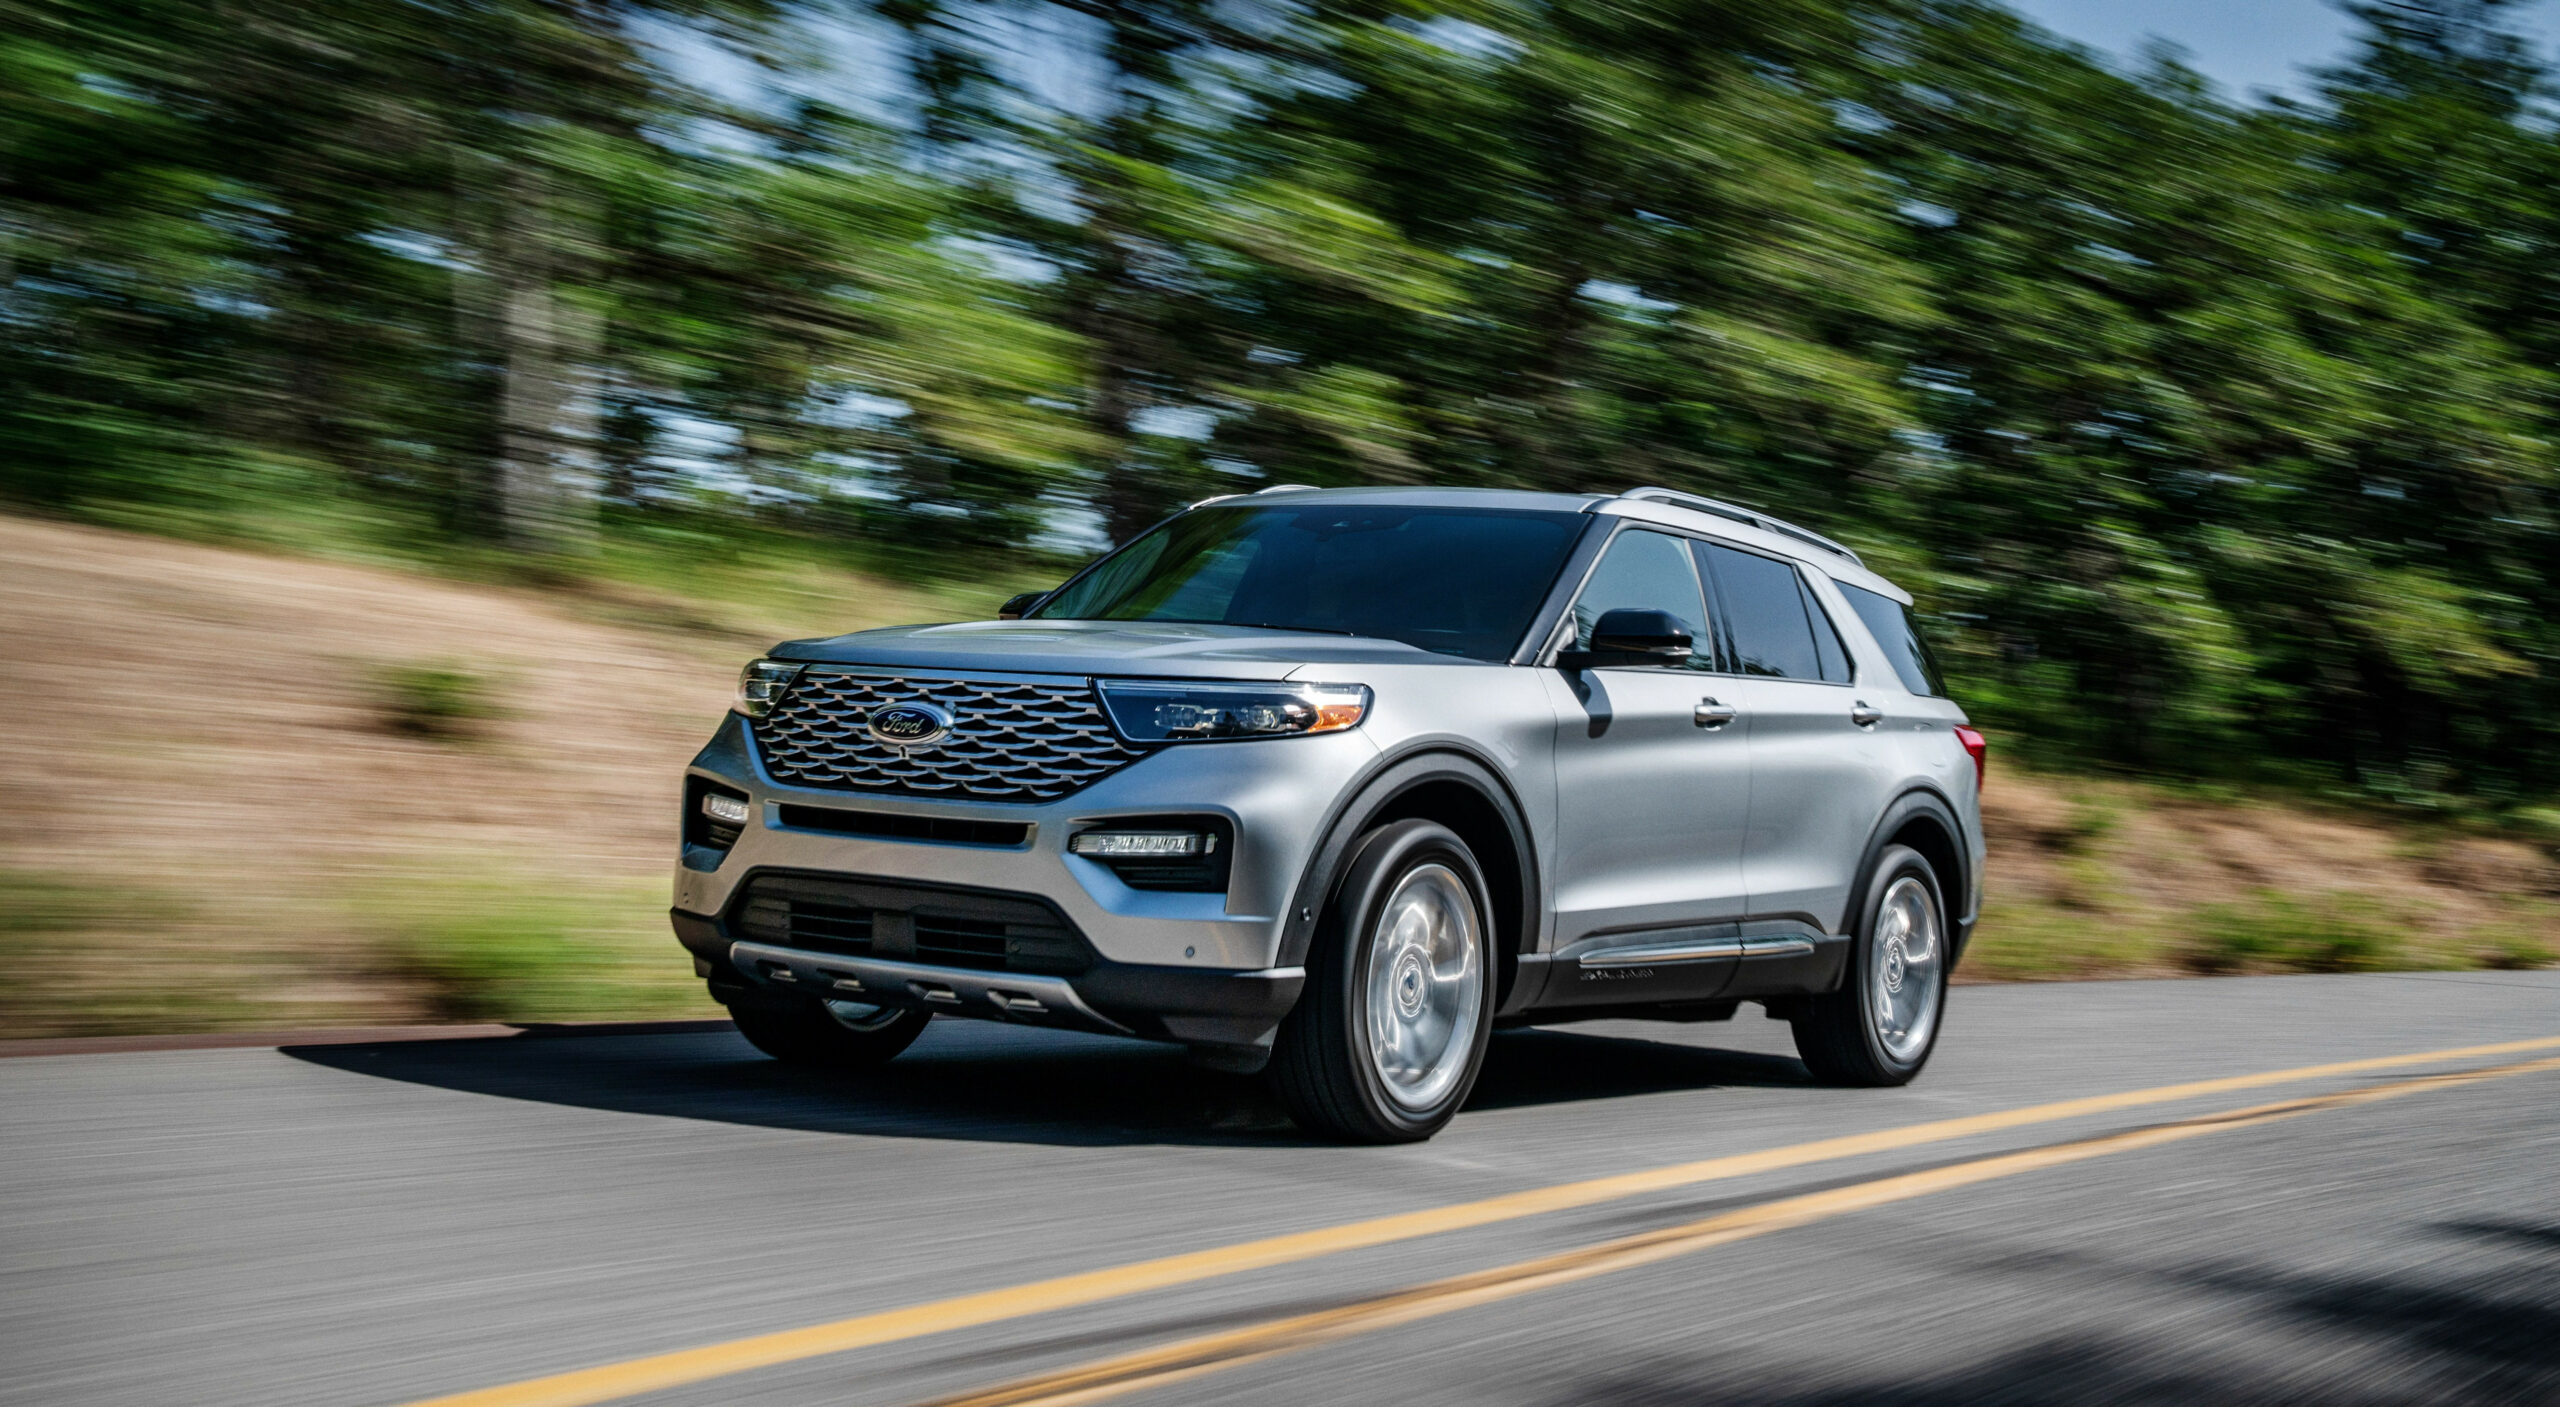 Redesign and Concept 2022 Ford Explorer Job 1